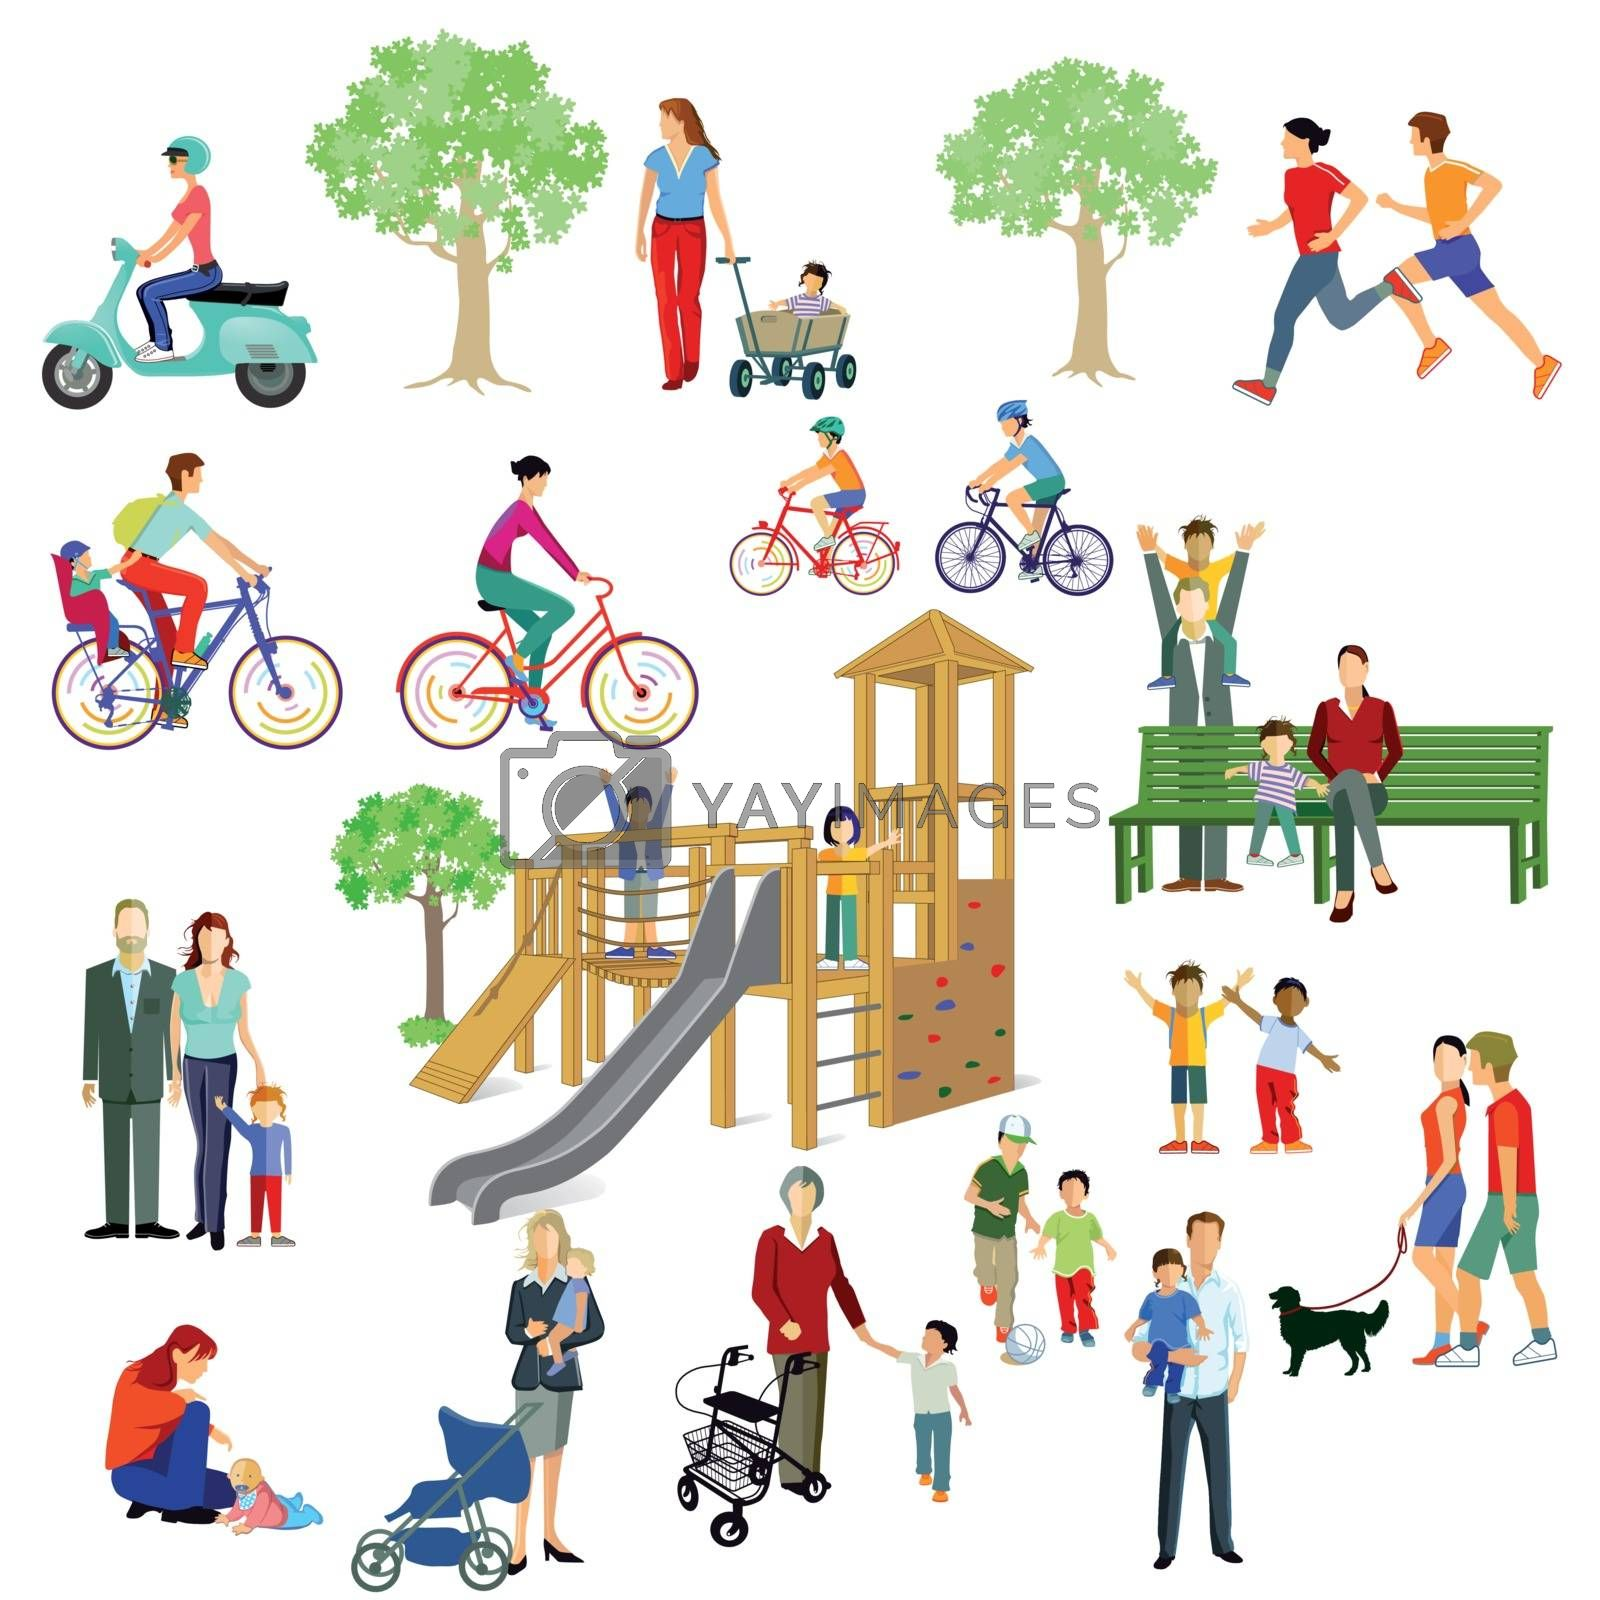 Families and people play in the park, illustration